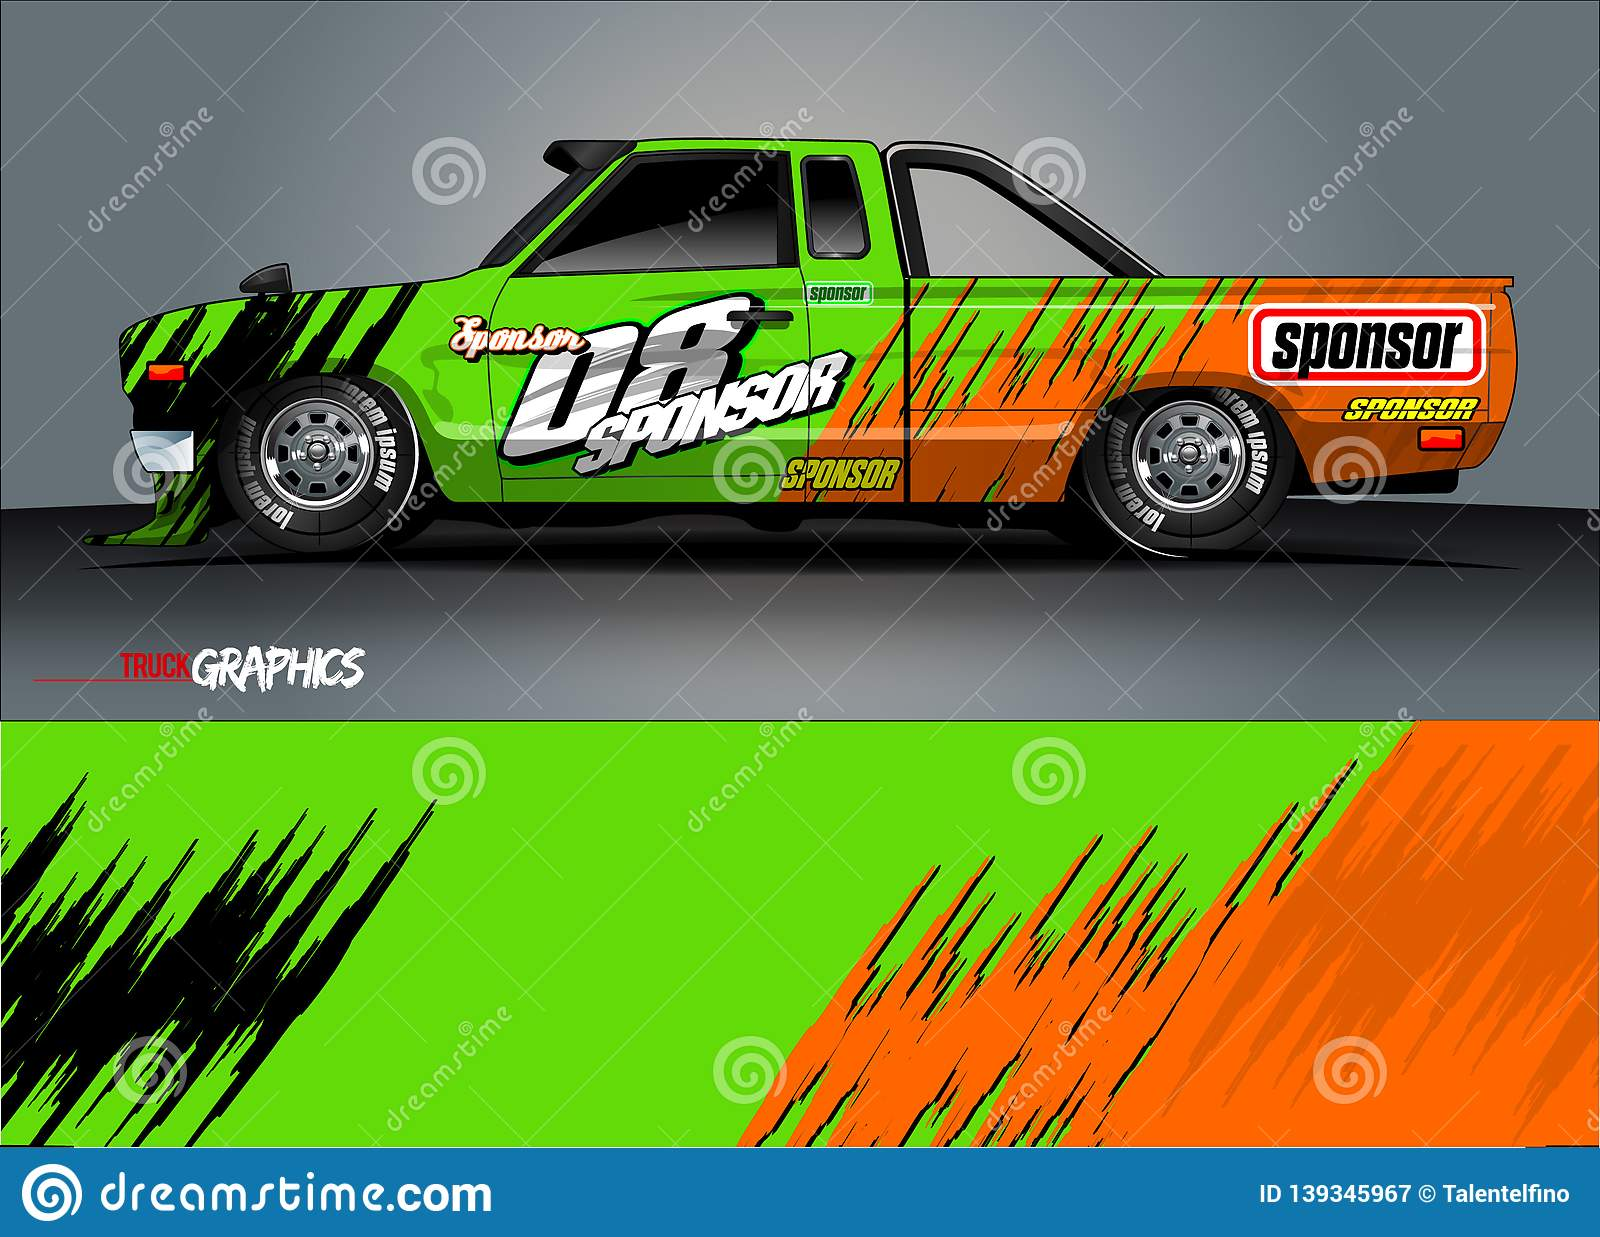 Pickup Truck Livery Graphic Vector Abstract Grunge Background Design For Vehicle Vinyl Wrap And Car Branding Stock Illustration Illustration Of Modern Grunge 139345967